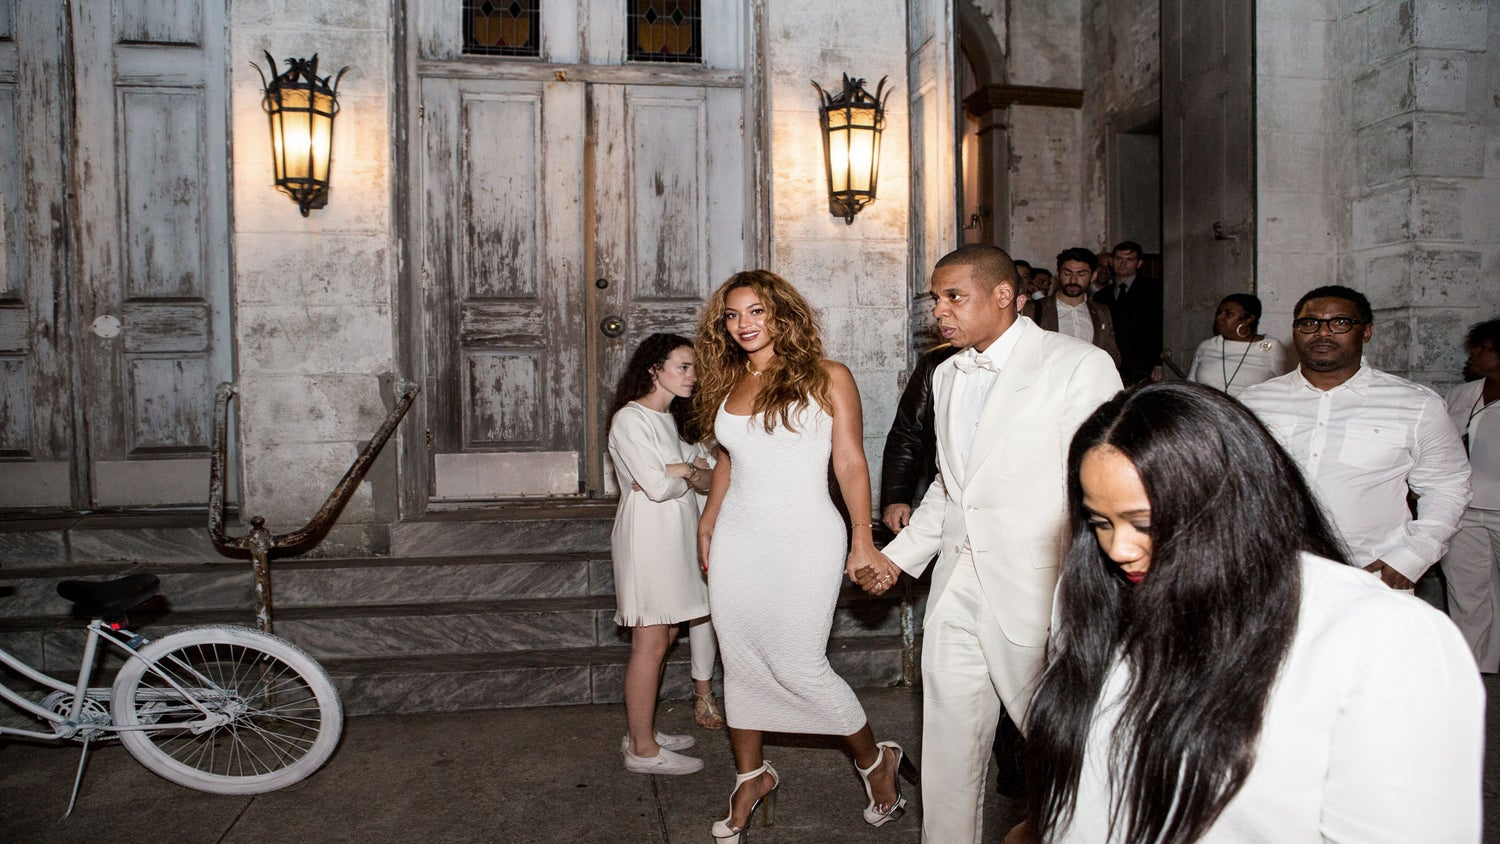 Girl, Where'd You Get That?: Beyonce's Bridesmaid Dress